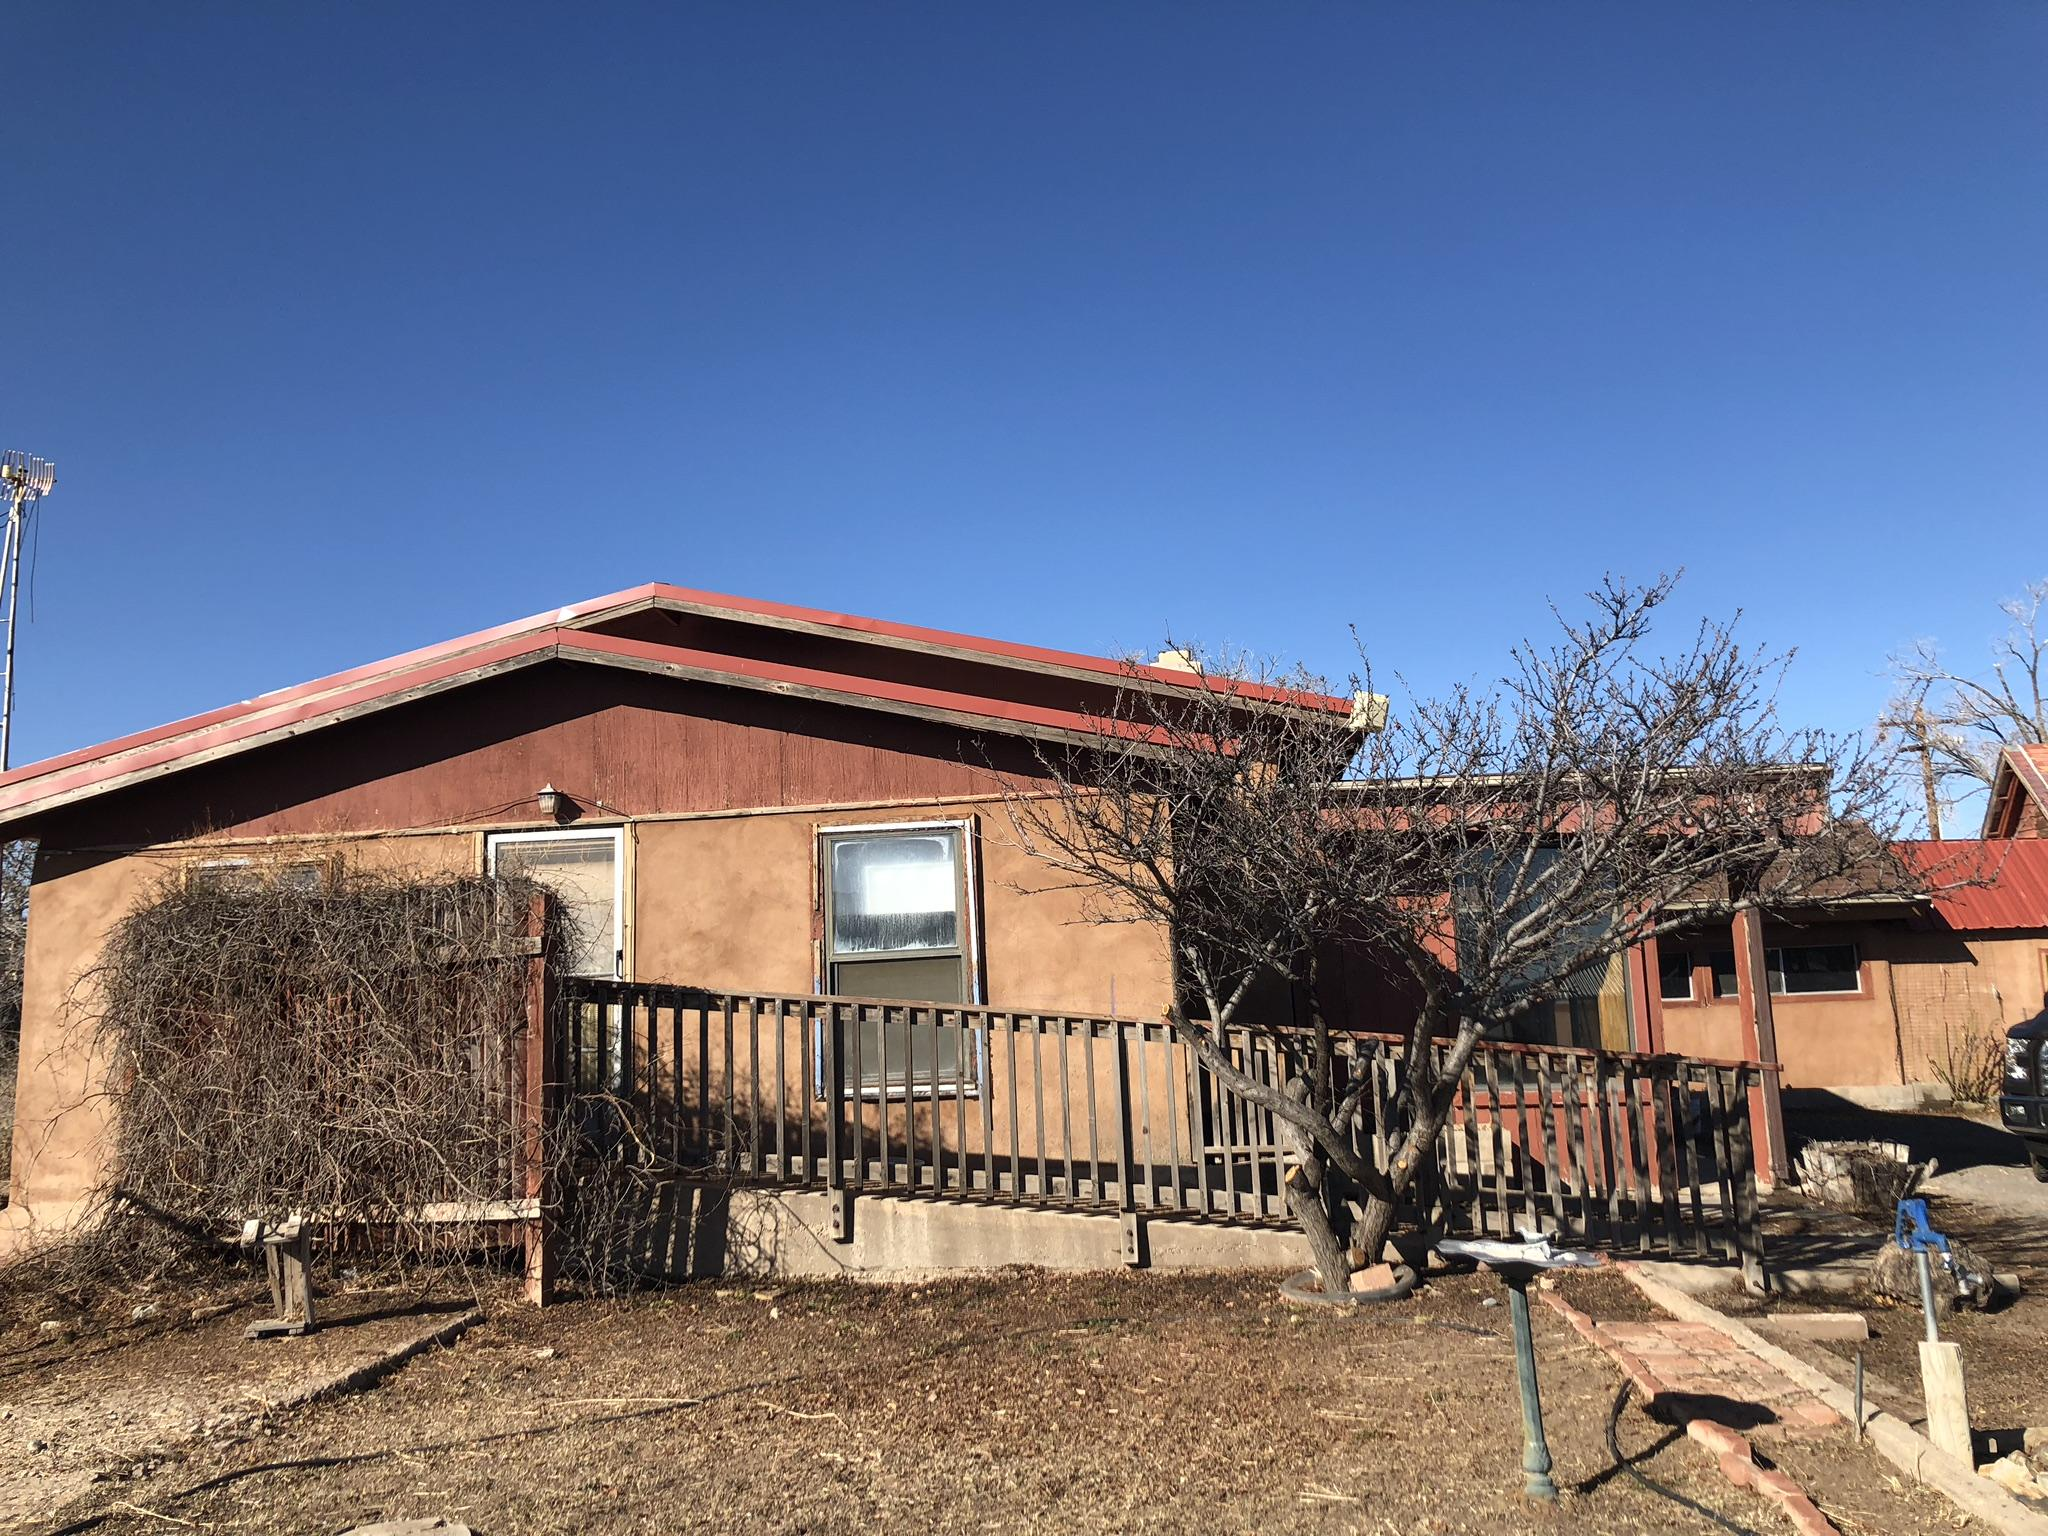 600 S Main Street, Magdalena, NM 87825 - Magdalena, NM real estate listing